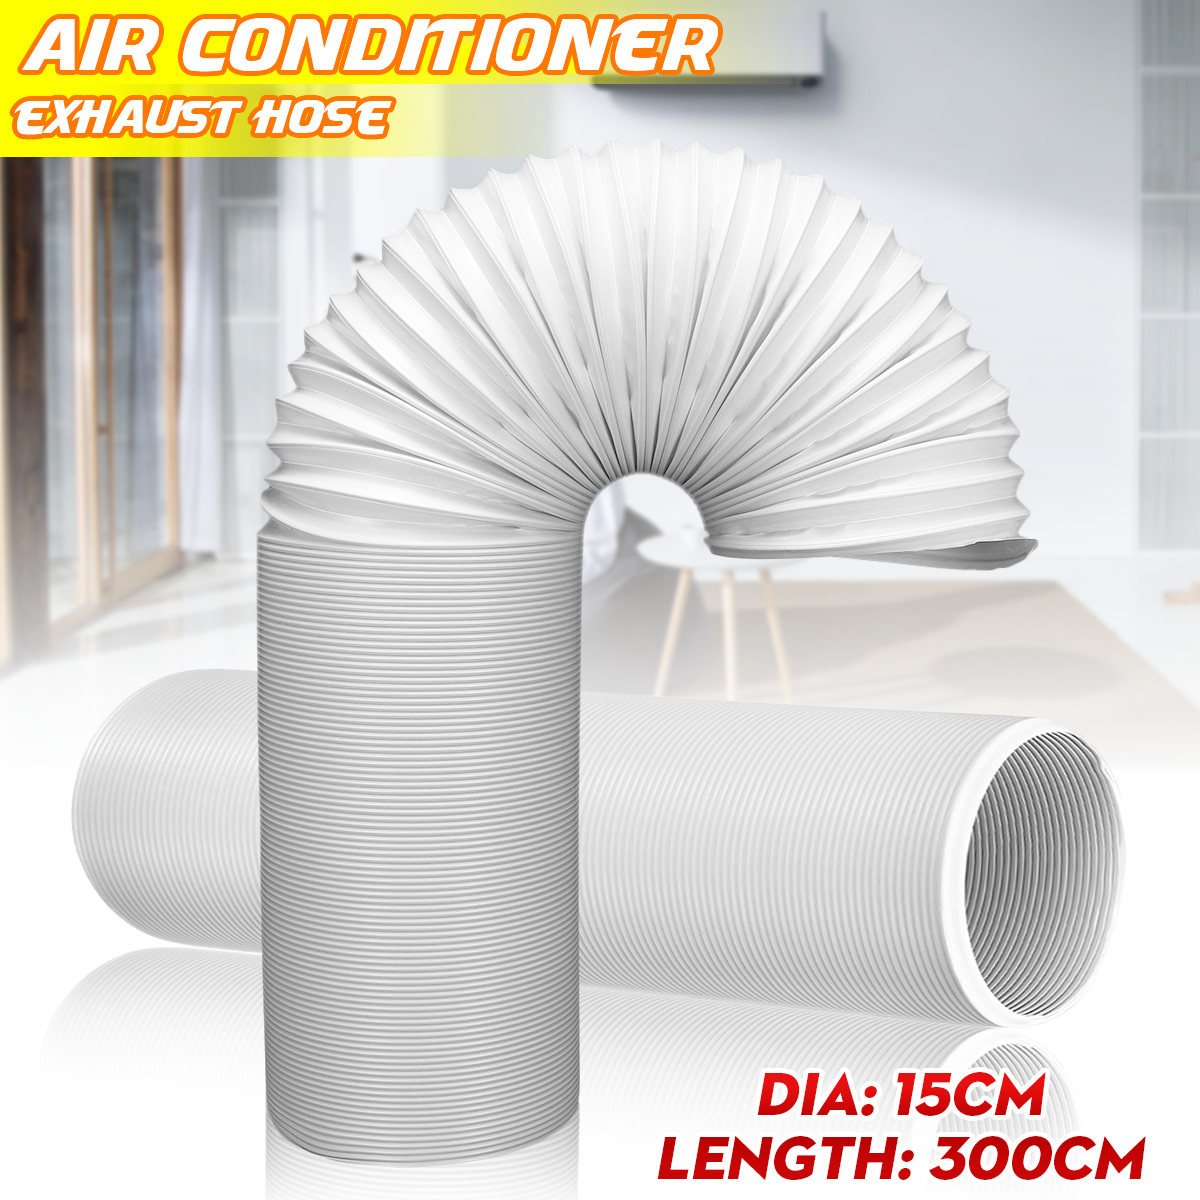 portable air conditioner universal exhaust hose 6 inch diameter 59 inch length anti clockwise thread